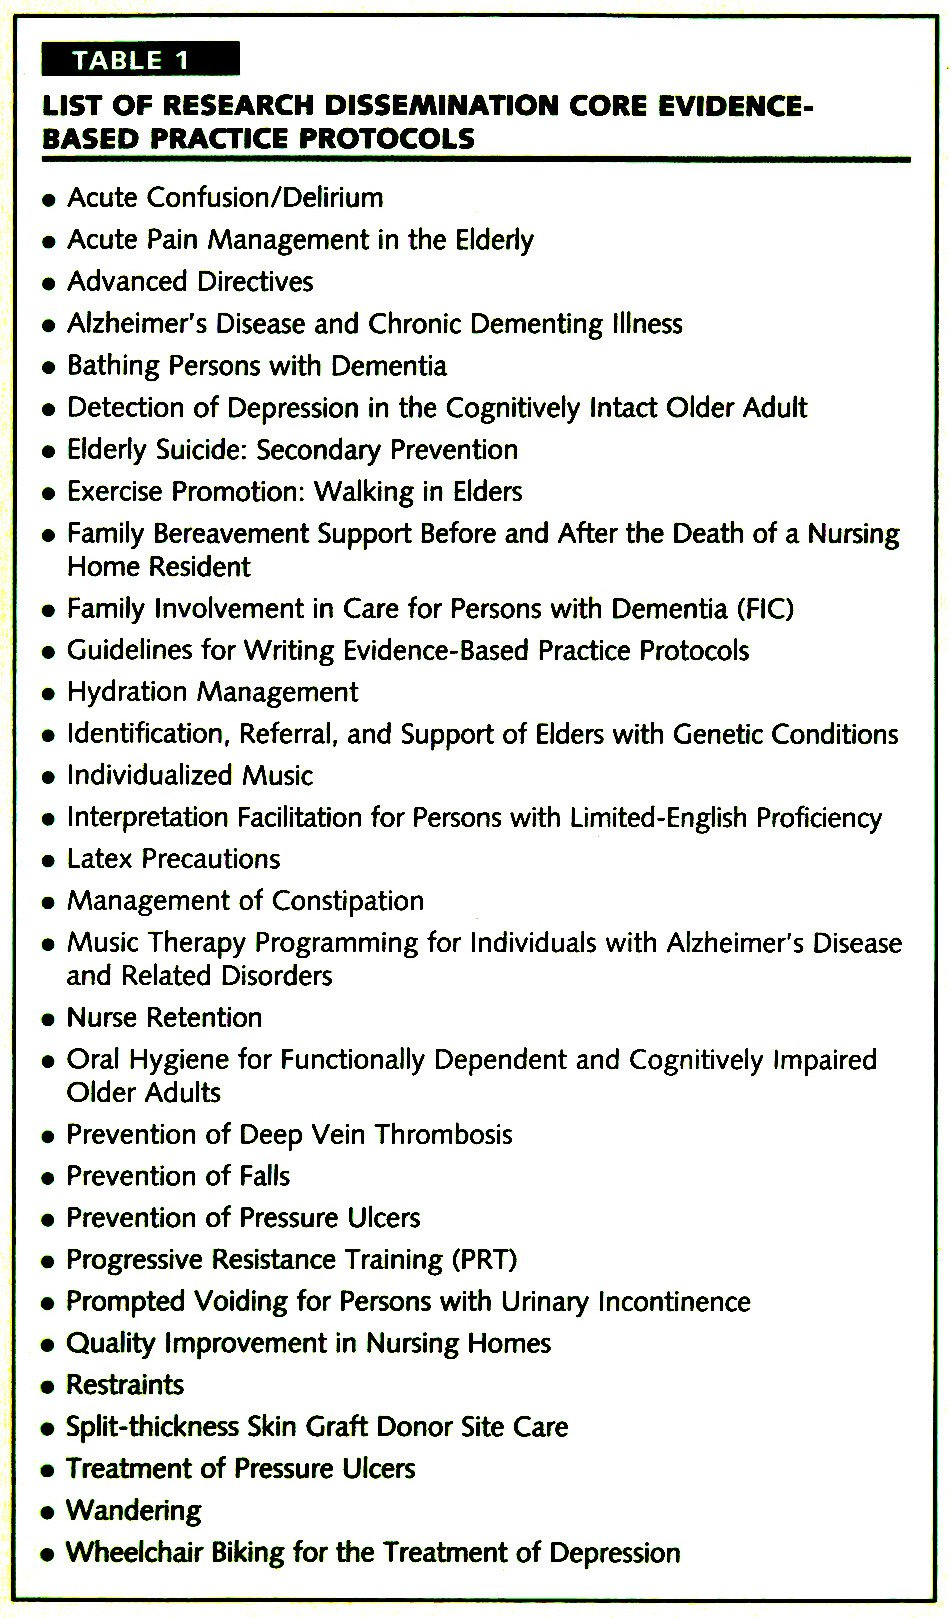 TABLE 1LIST OF RESEARCH DISSEMINATION CORE EVIDENCEBASED PRACTICE PROTOCOLS